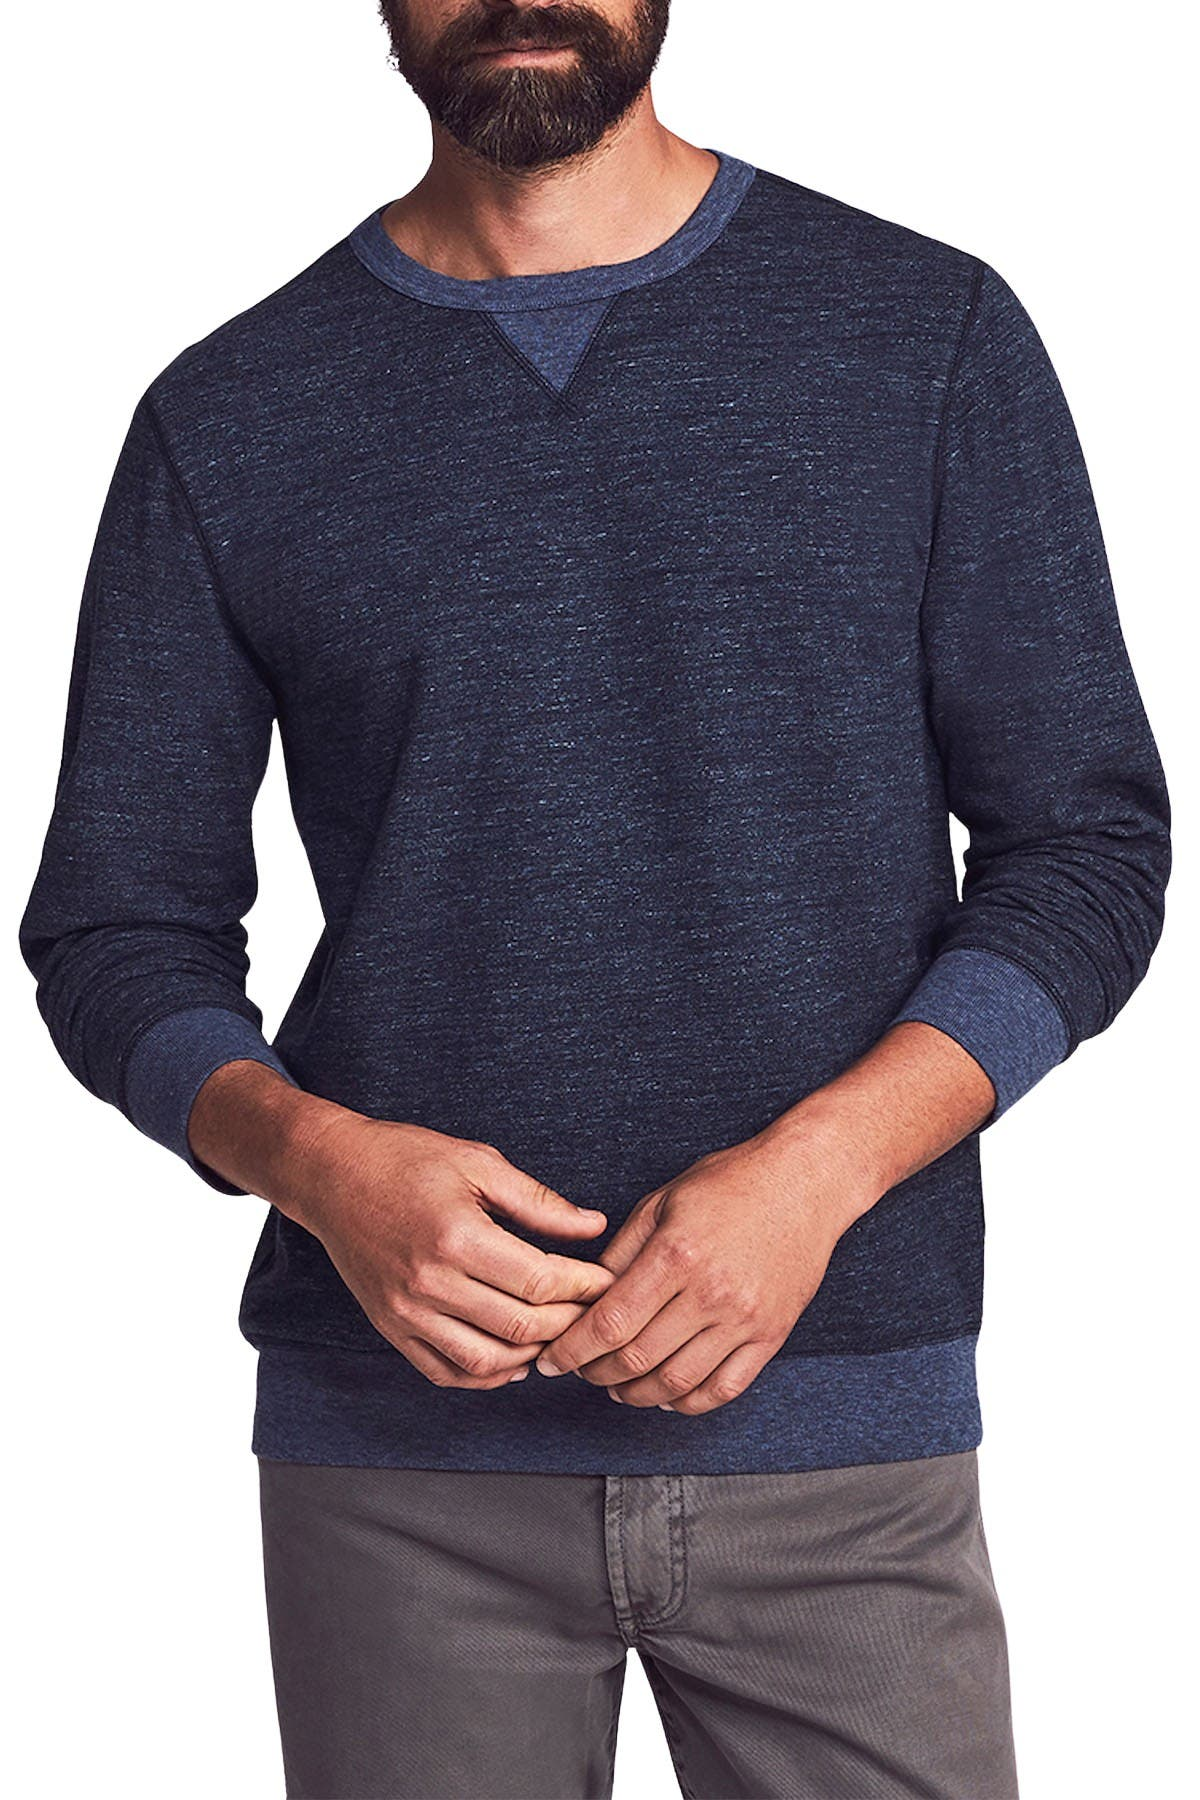 Image of FAHERTY BRAND Dual Knit Crew Neck Sweater